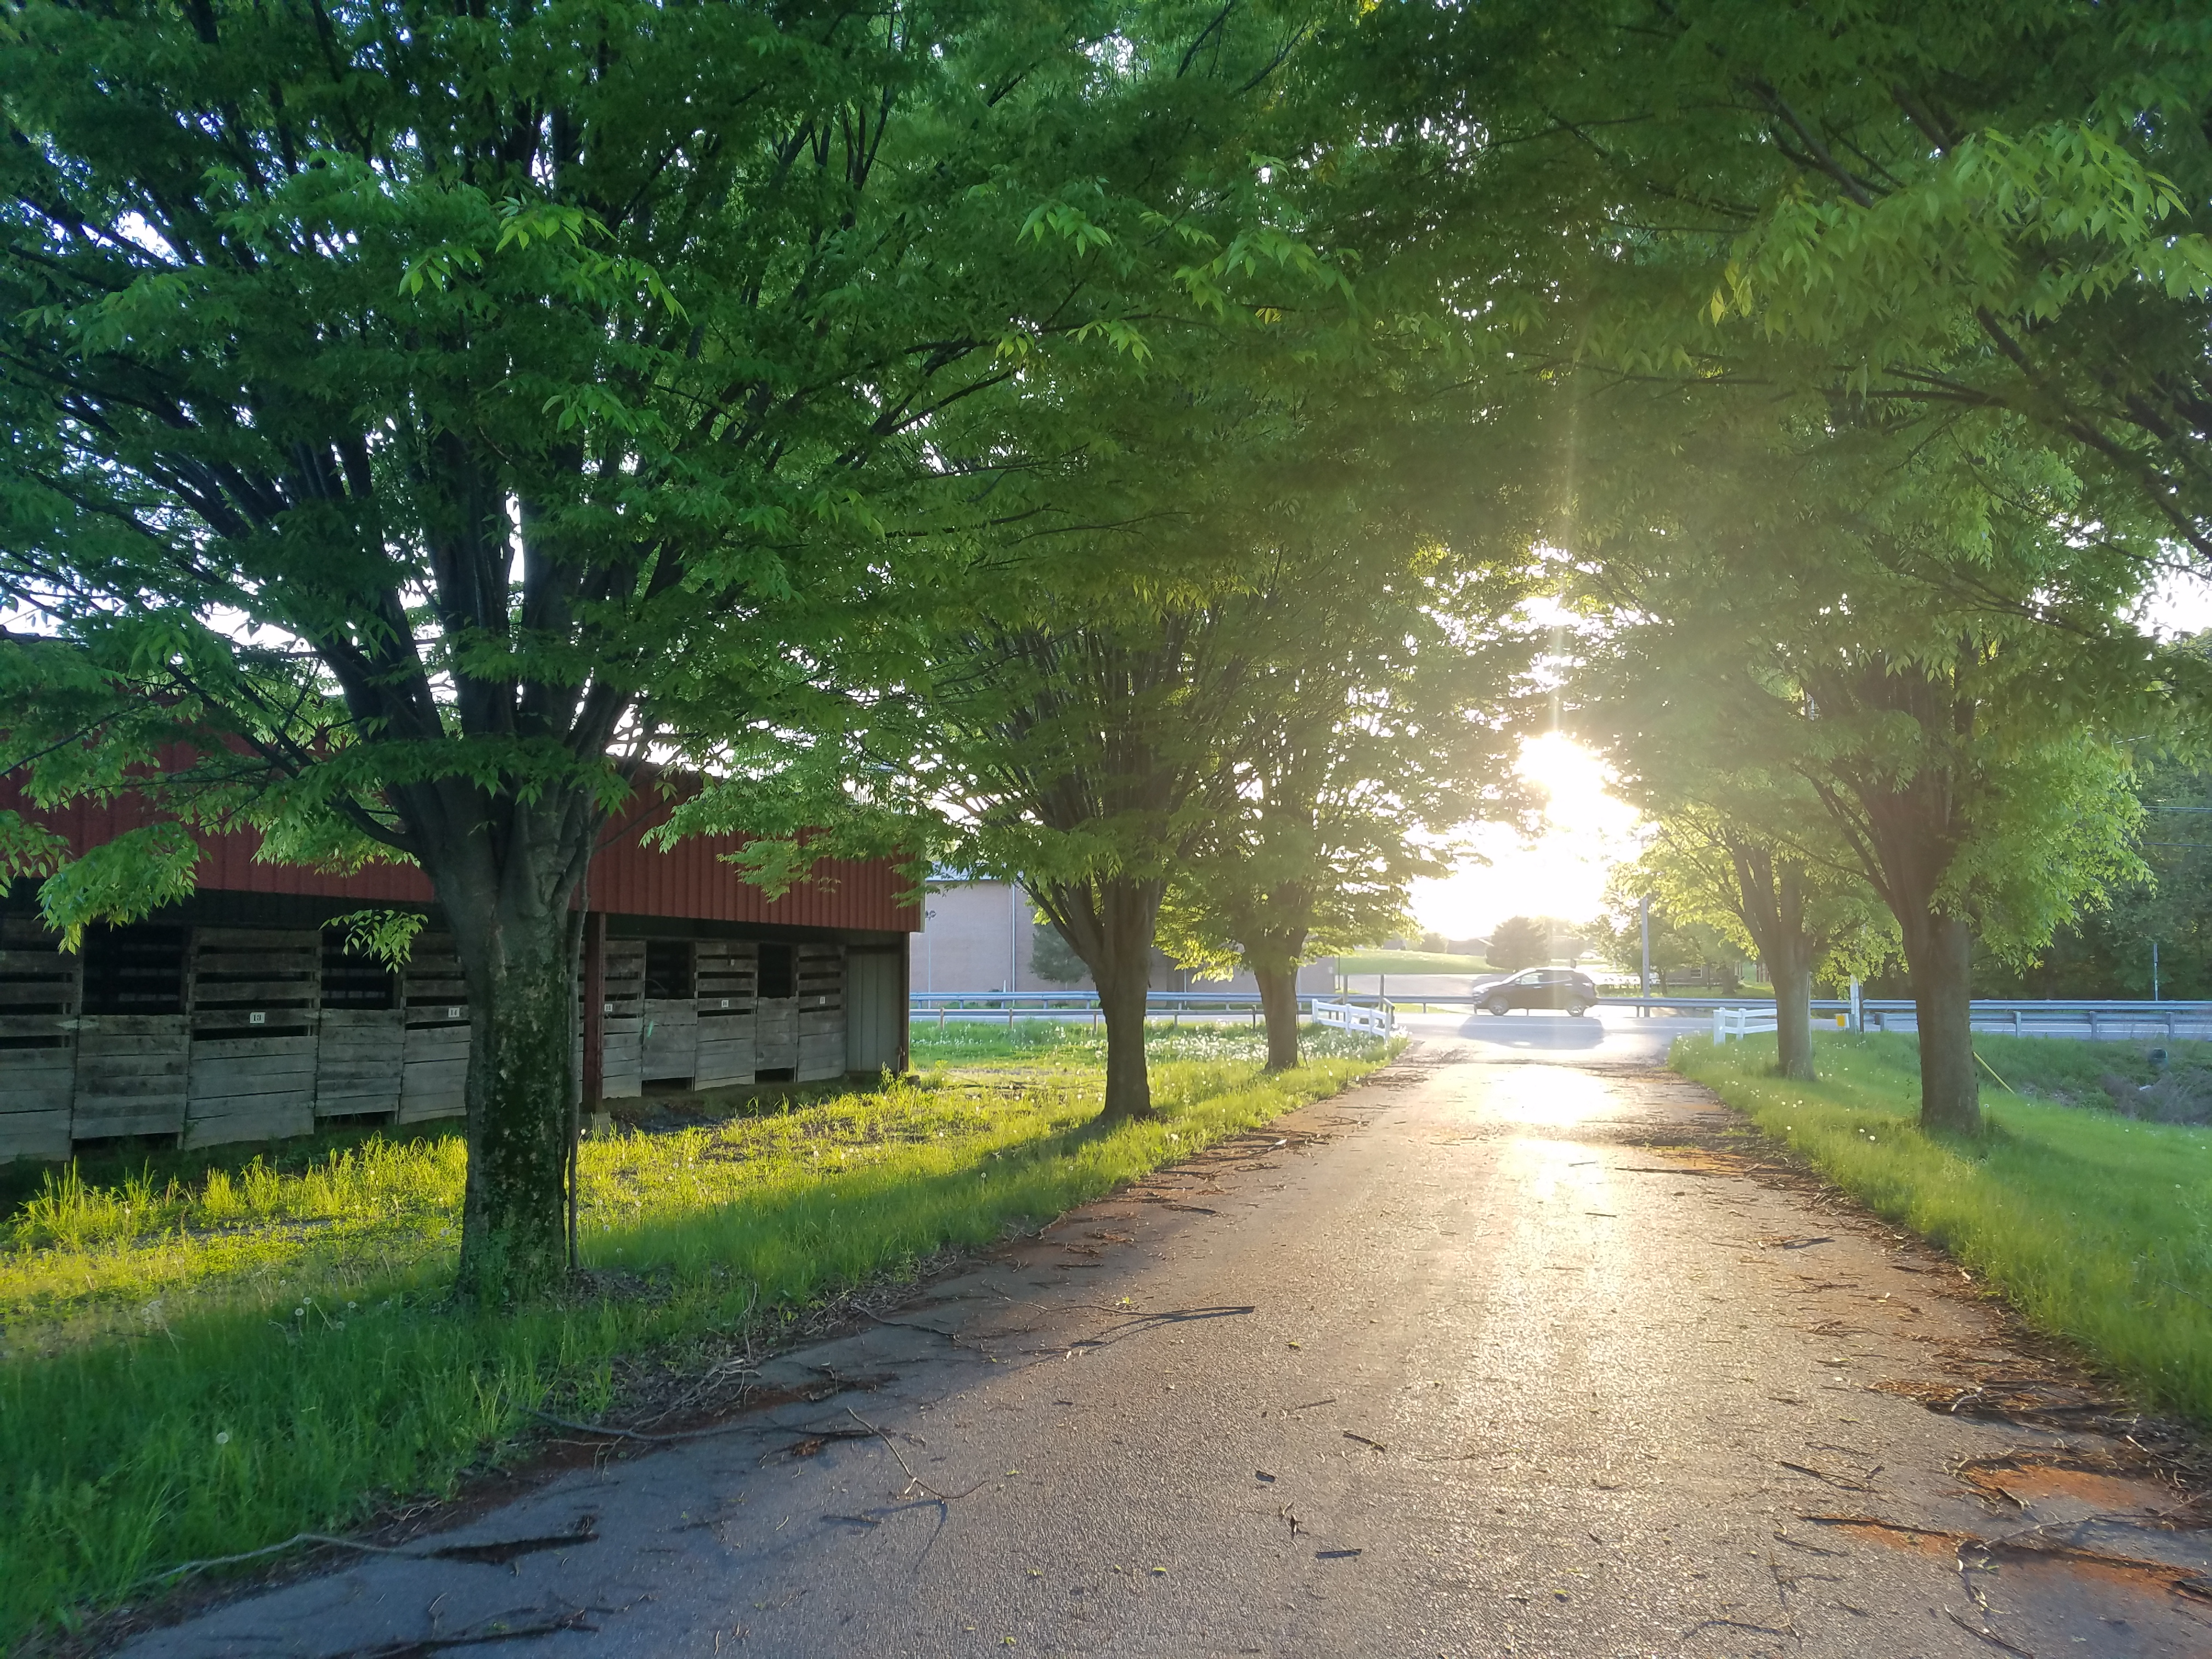 What to do and where to go to avoid the heat this weekend in Lebanon County